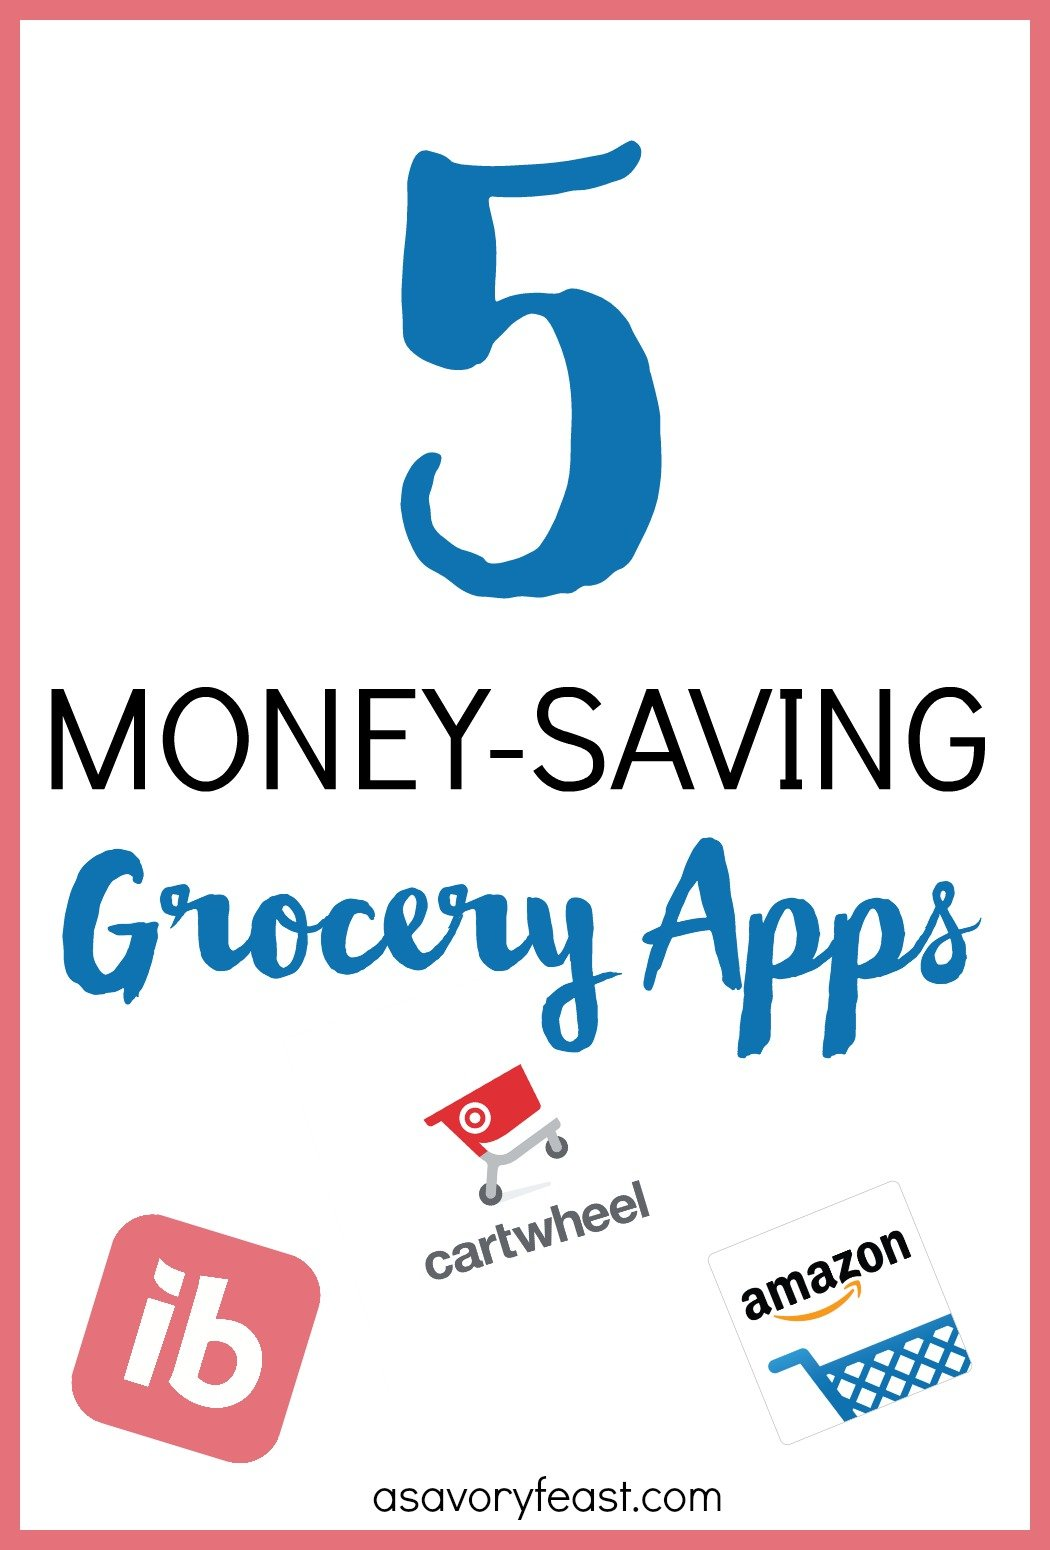 5 Money-Saving Grocery Apps // Looking for an easy way to save money on groceries? If couponing just isn't your thing, try downloading these money-saving grocery apps! It only takes a few minutes to save big on groceries with these apps.